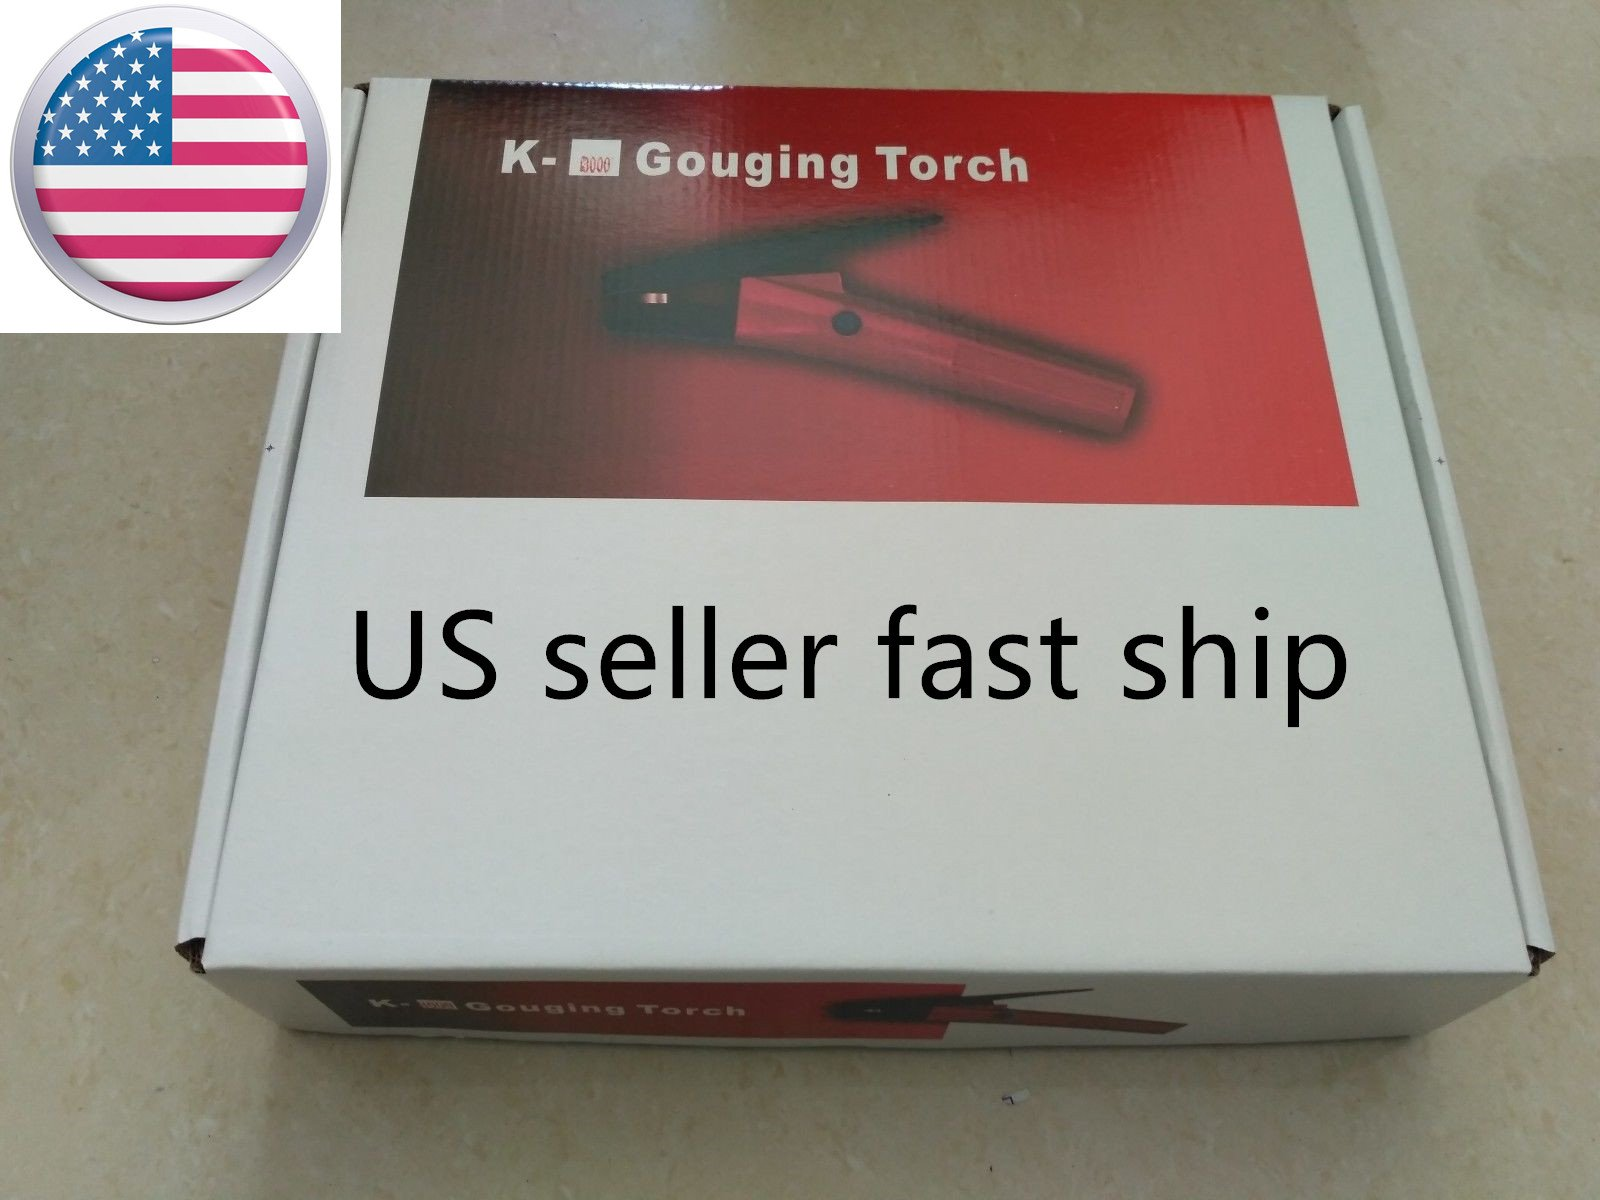 US Seller CARBON ARC GOUGING TORCH with 7' cable replace ARCAIR K3000 NEW IN BOX 600 AMP (ETA:2-8 WORK DAYS)